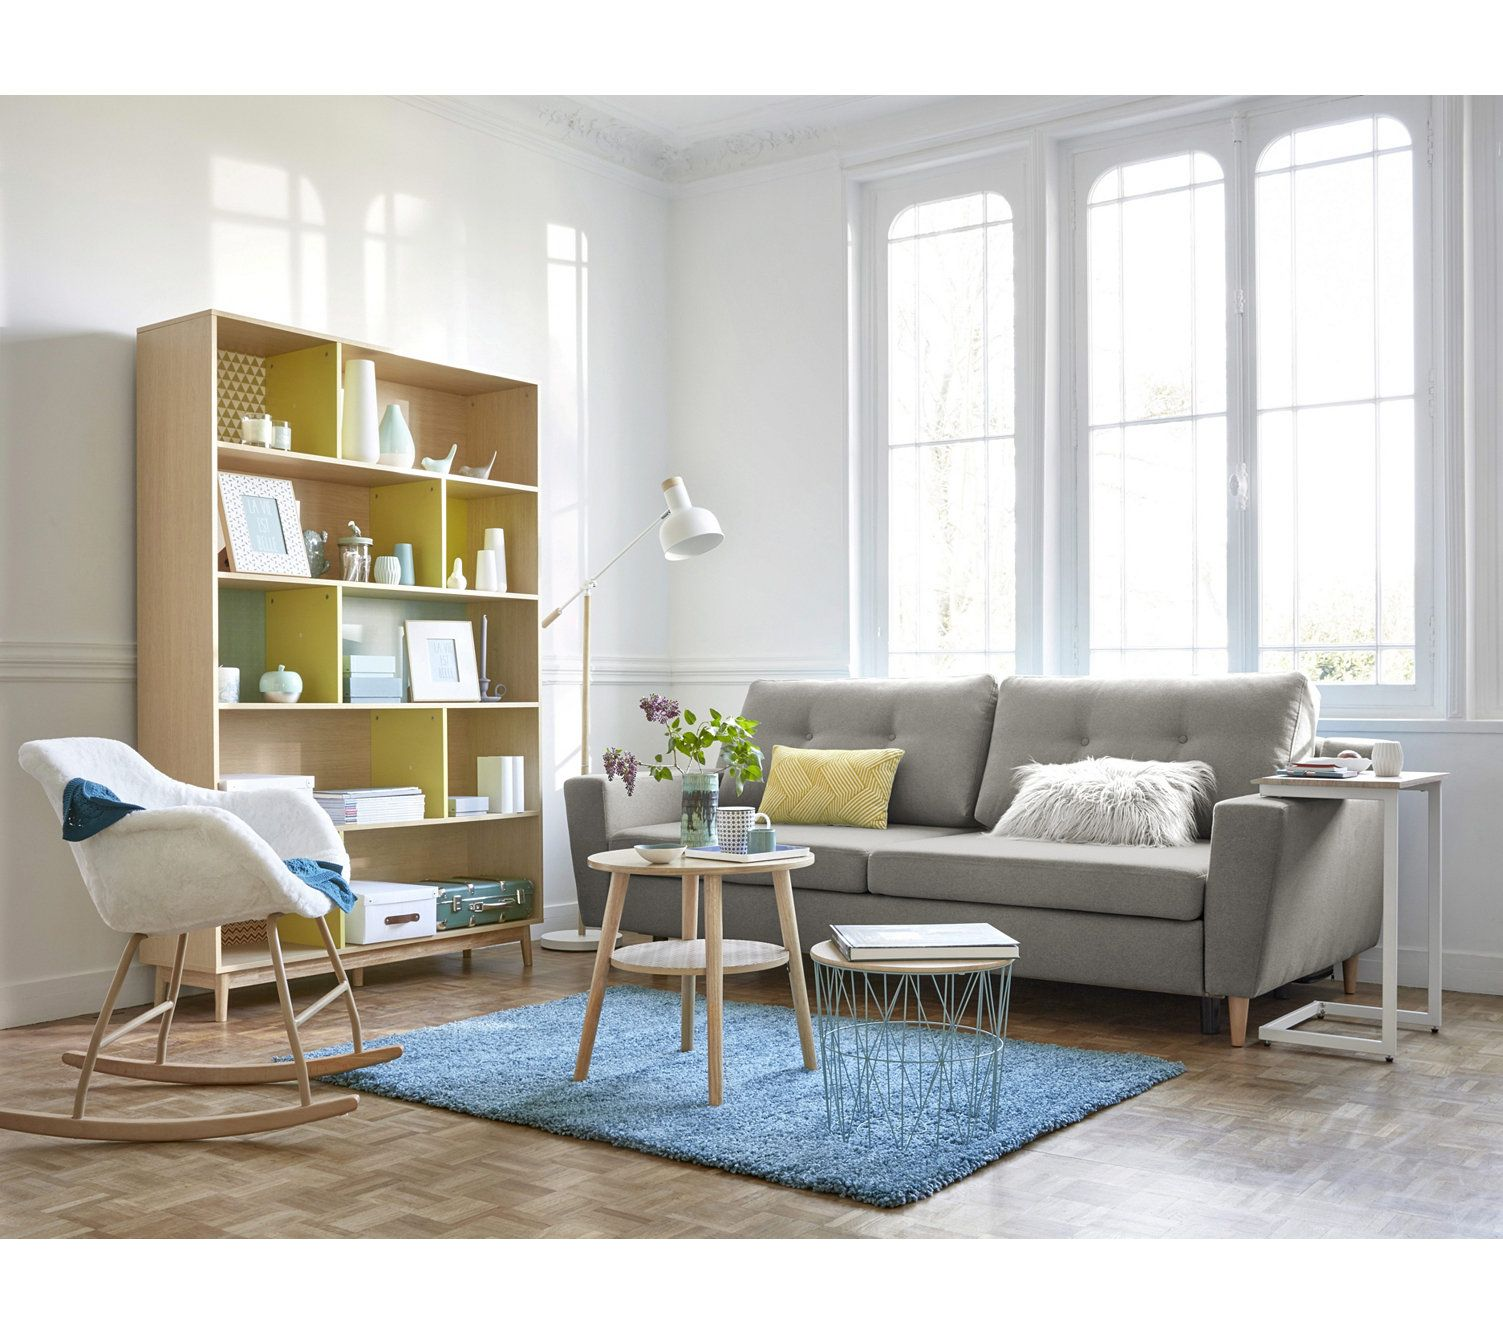 Canape Convertible 4 Places Ostende Tissu Gris Clair Decoration Maison Canape Canape Gris Clair